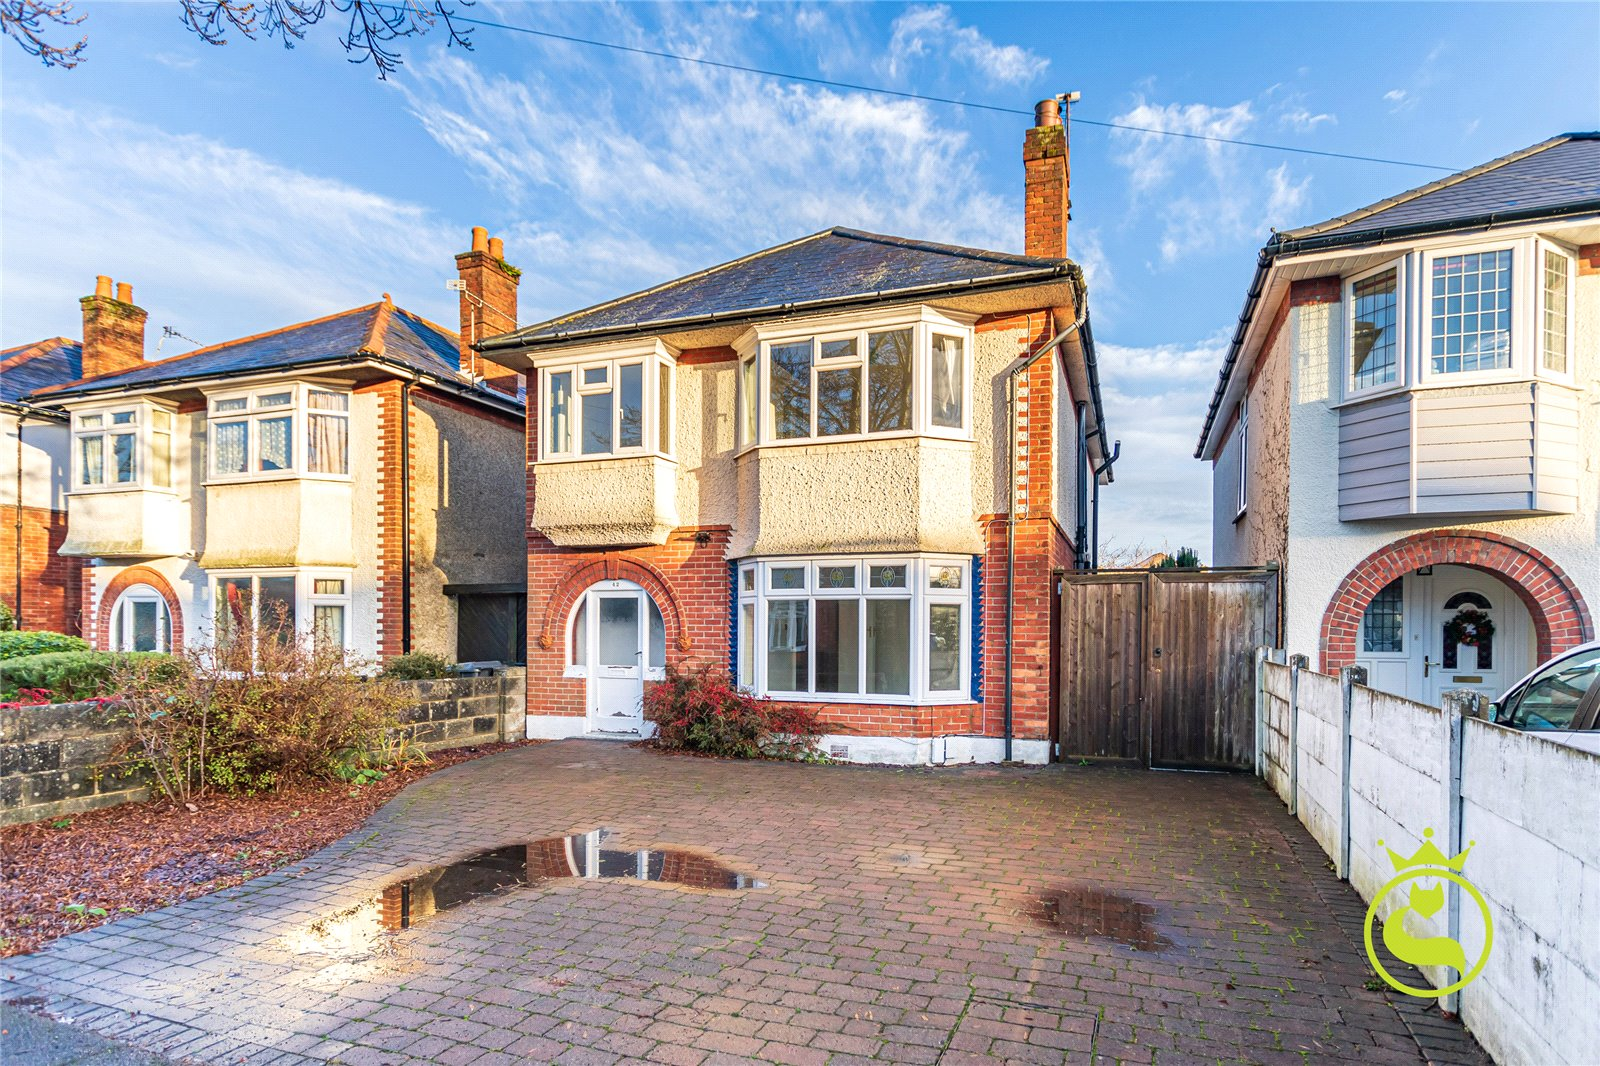 4 bed house to rent in Norton Road, Bournemouth, BH9